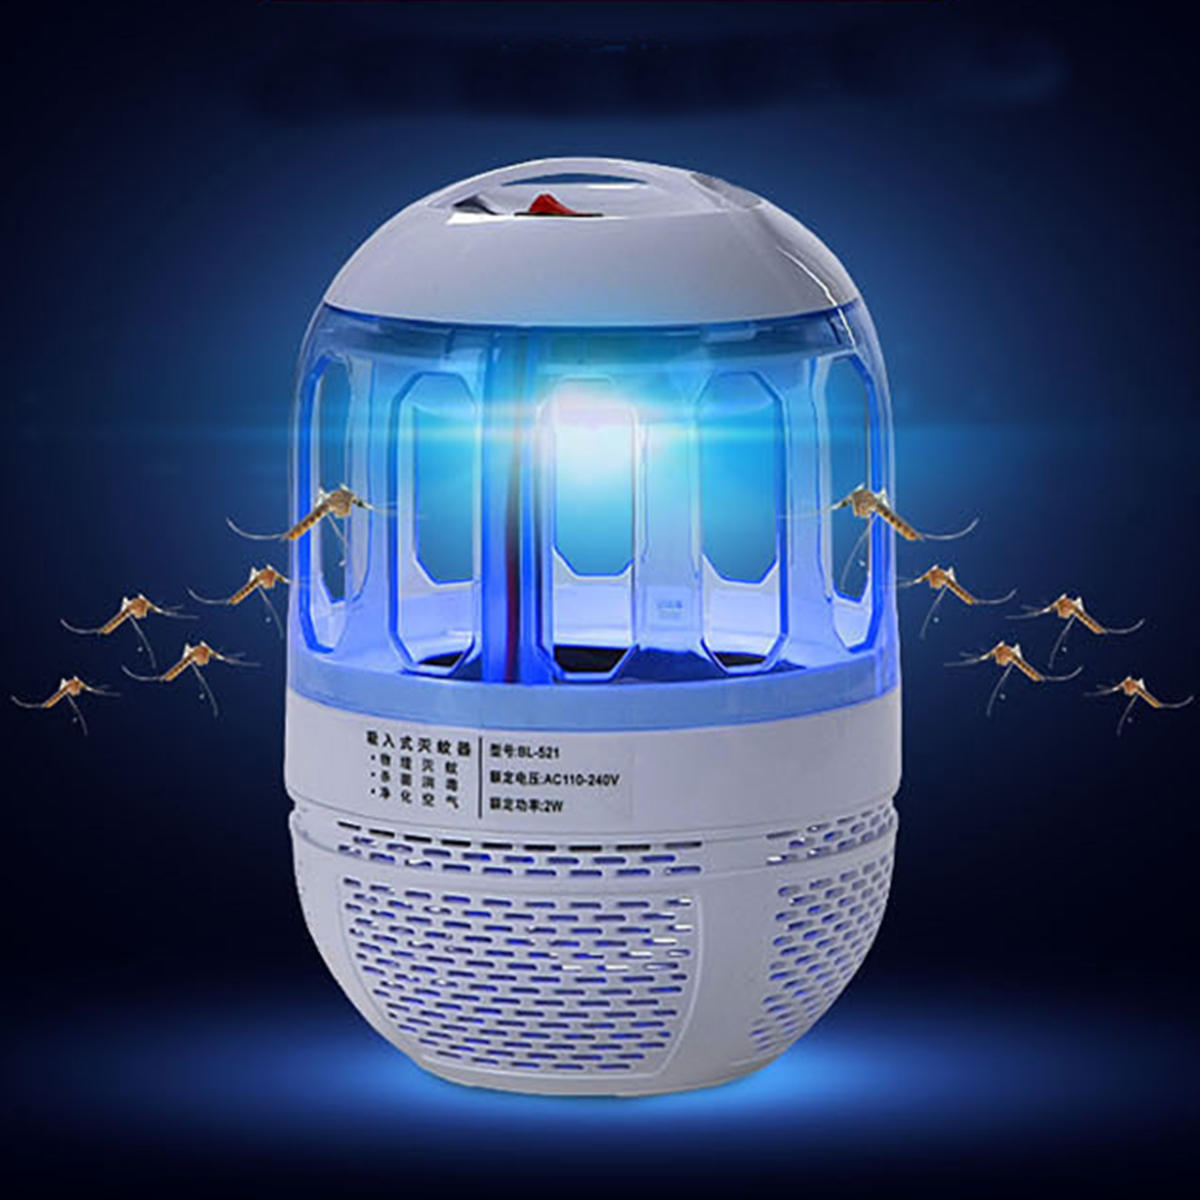 Elektrische 6 LED USB Moskito Insektenvernichter Lampe Fly Bug Zapper Trap Catcher UV Licht